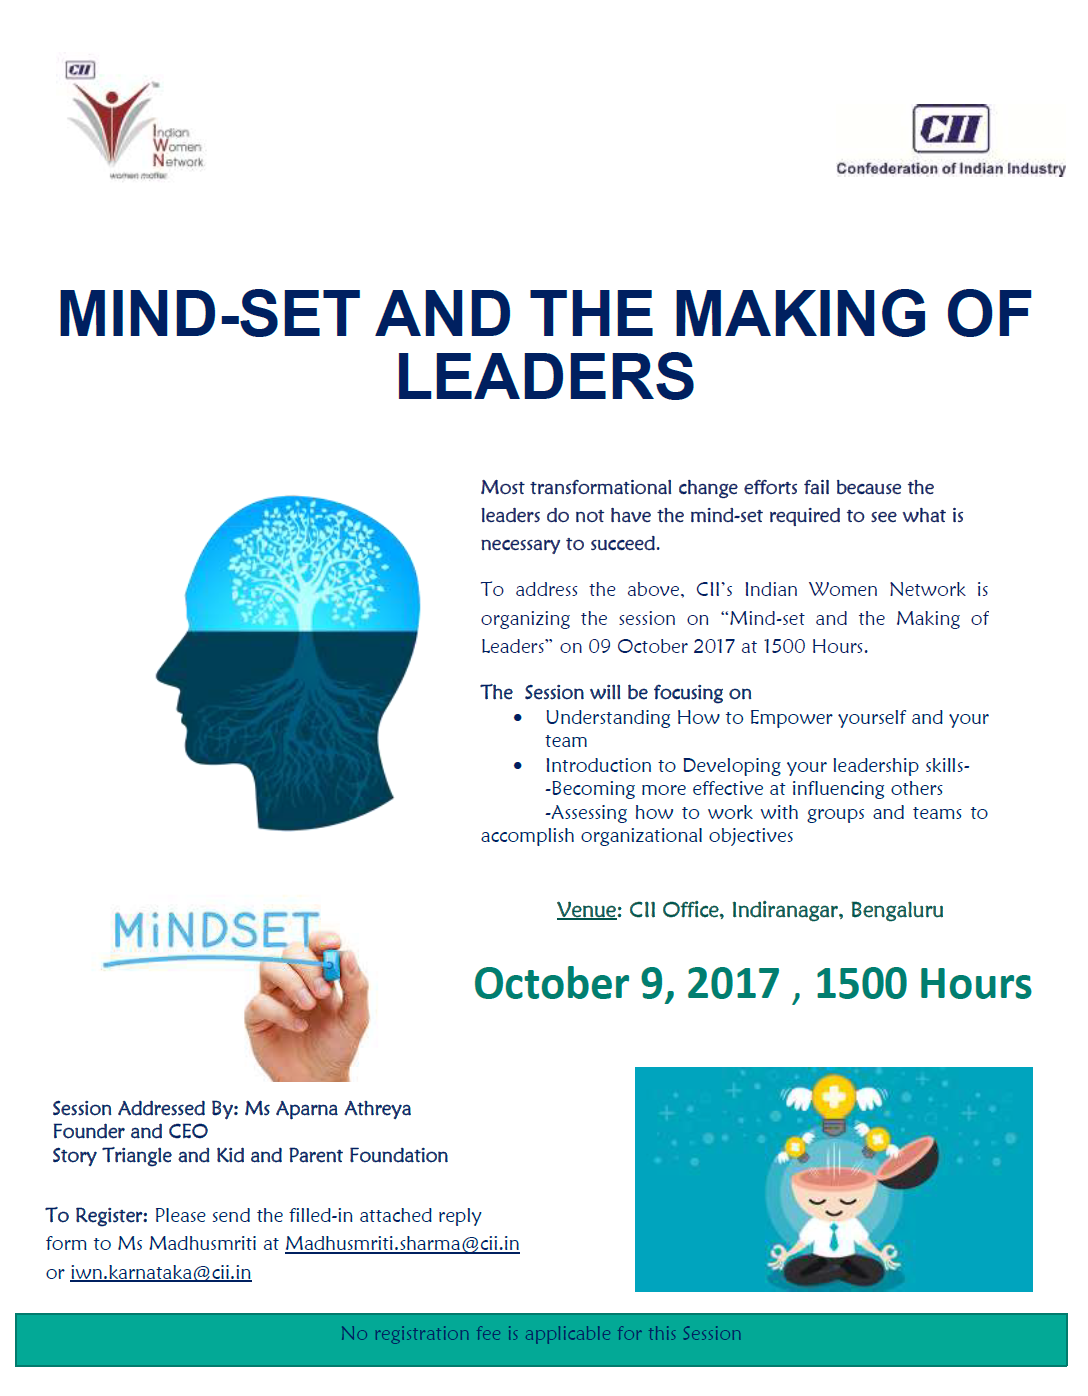 IWN Session on Mindset and the Making of Leaders